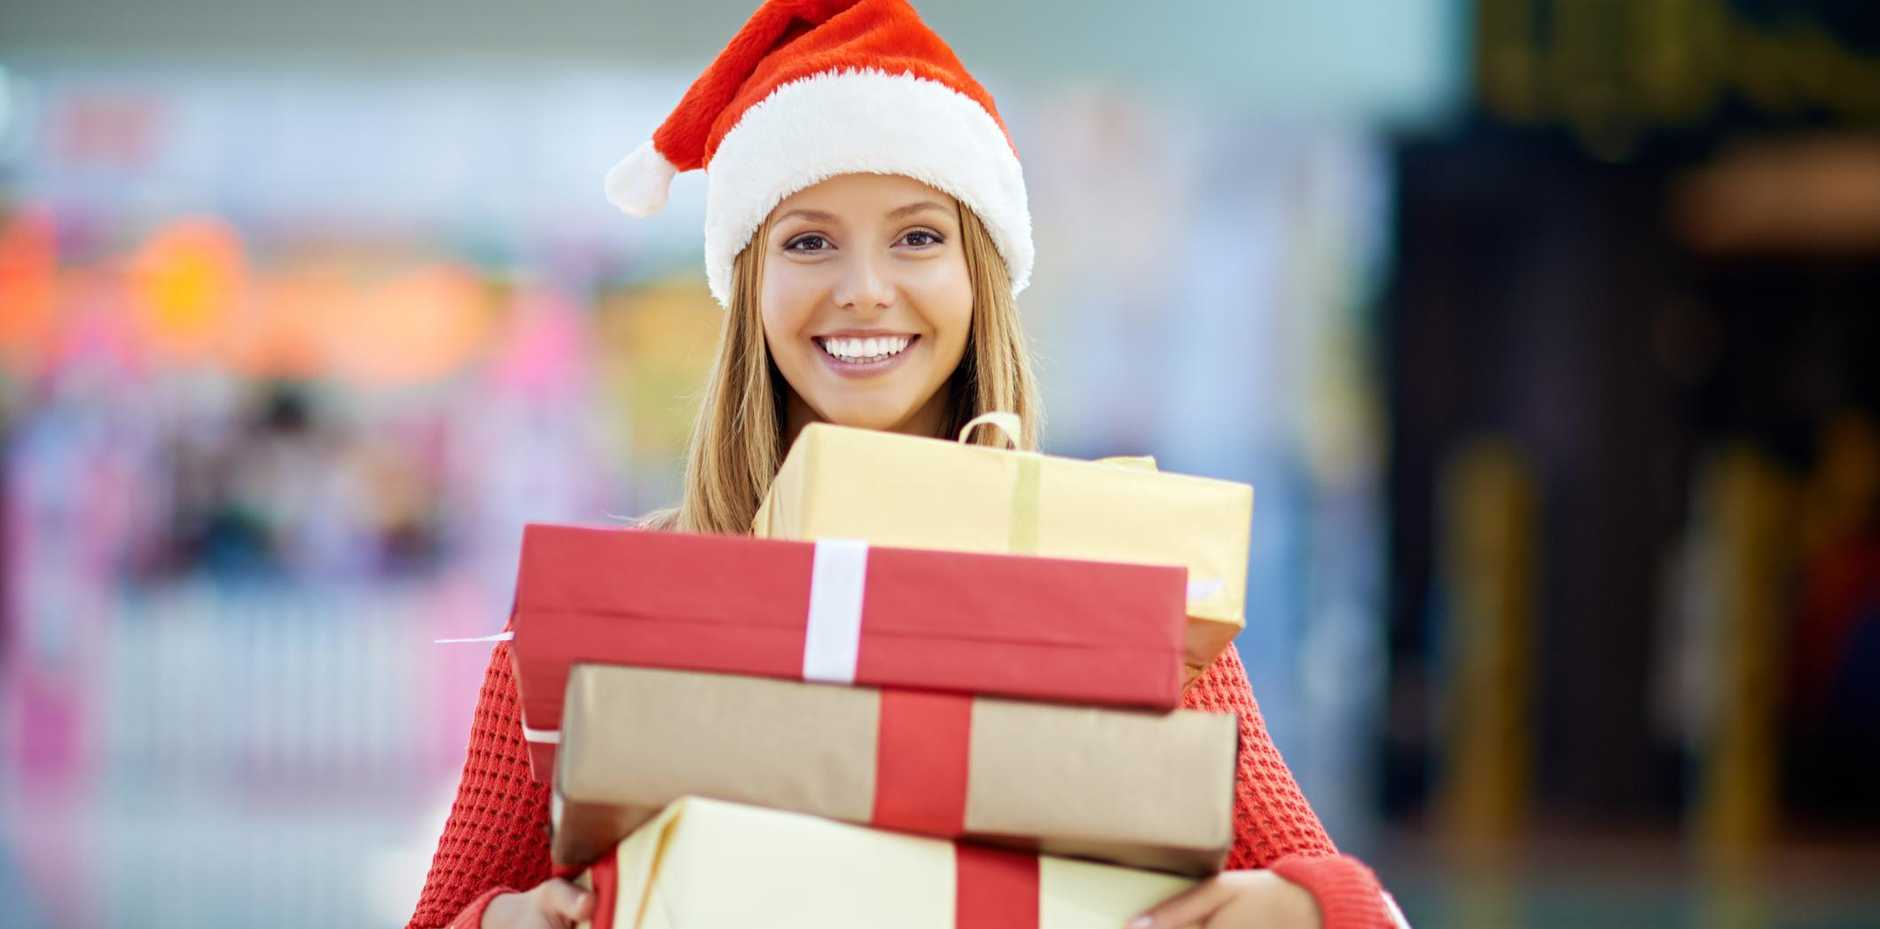 Taking Christmas in your stride is not a gift everyone has.